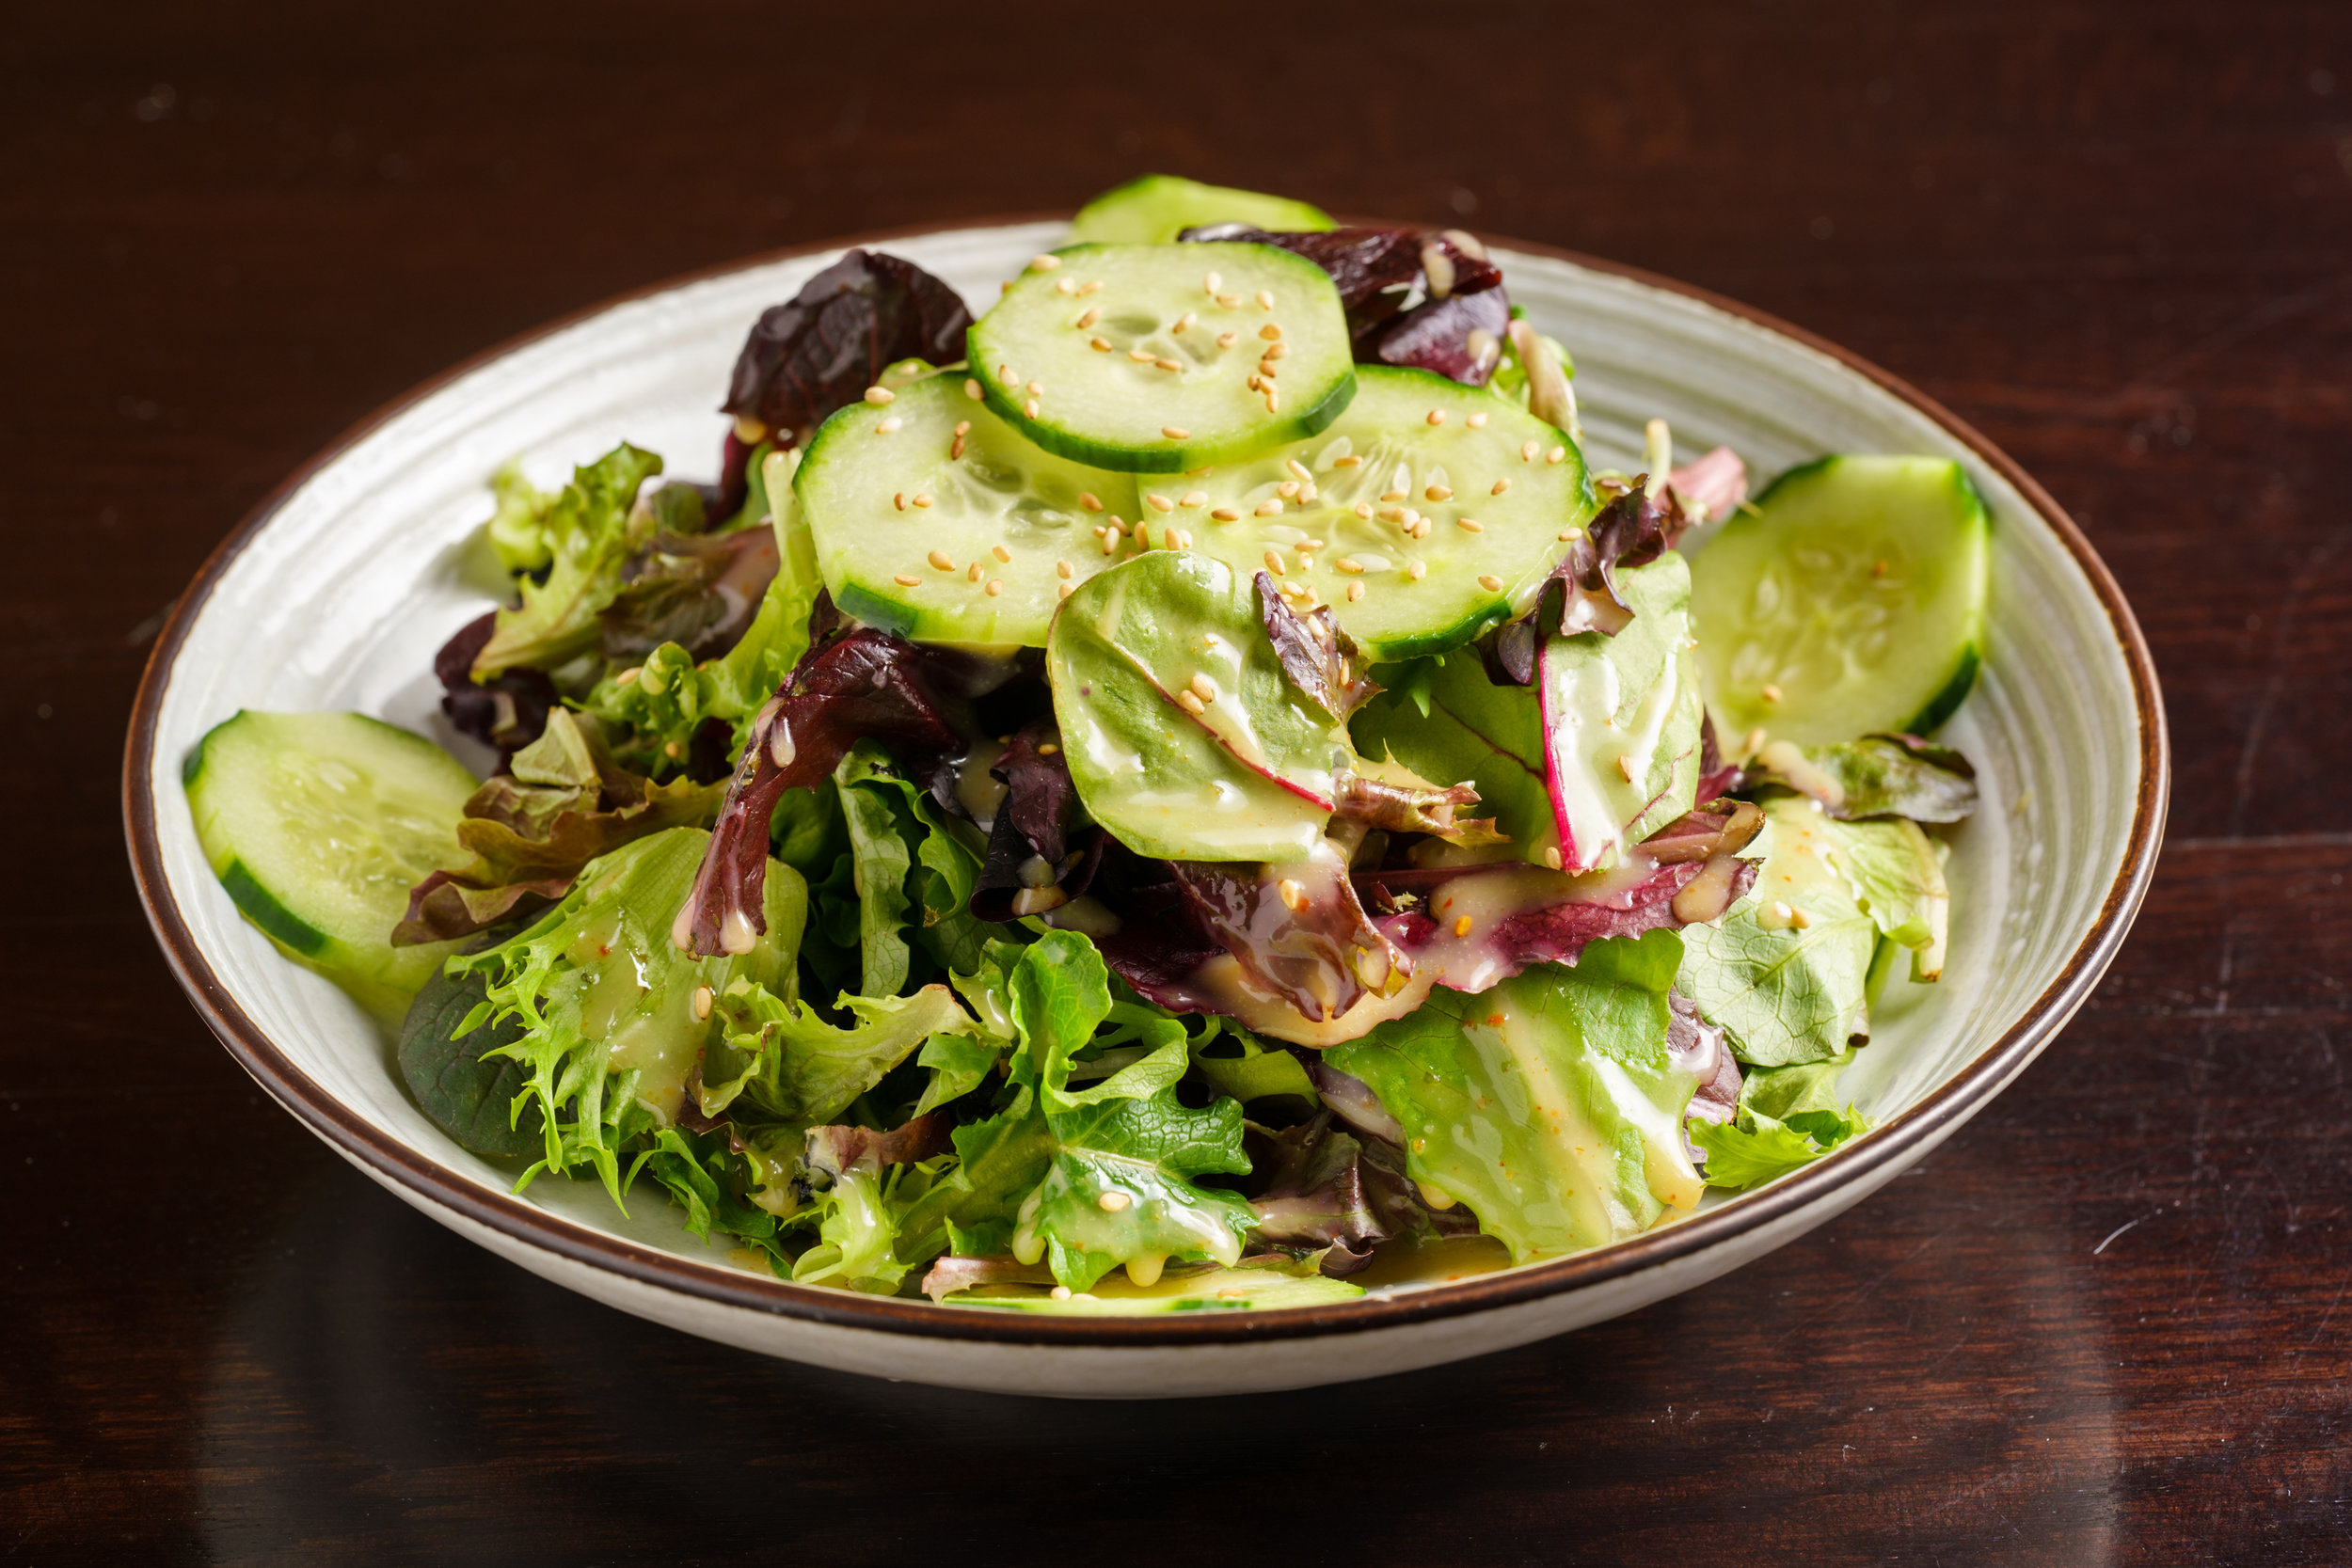 Romaine Heart and Cucumber Salad